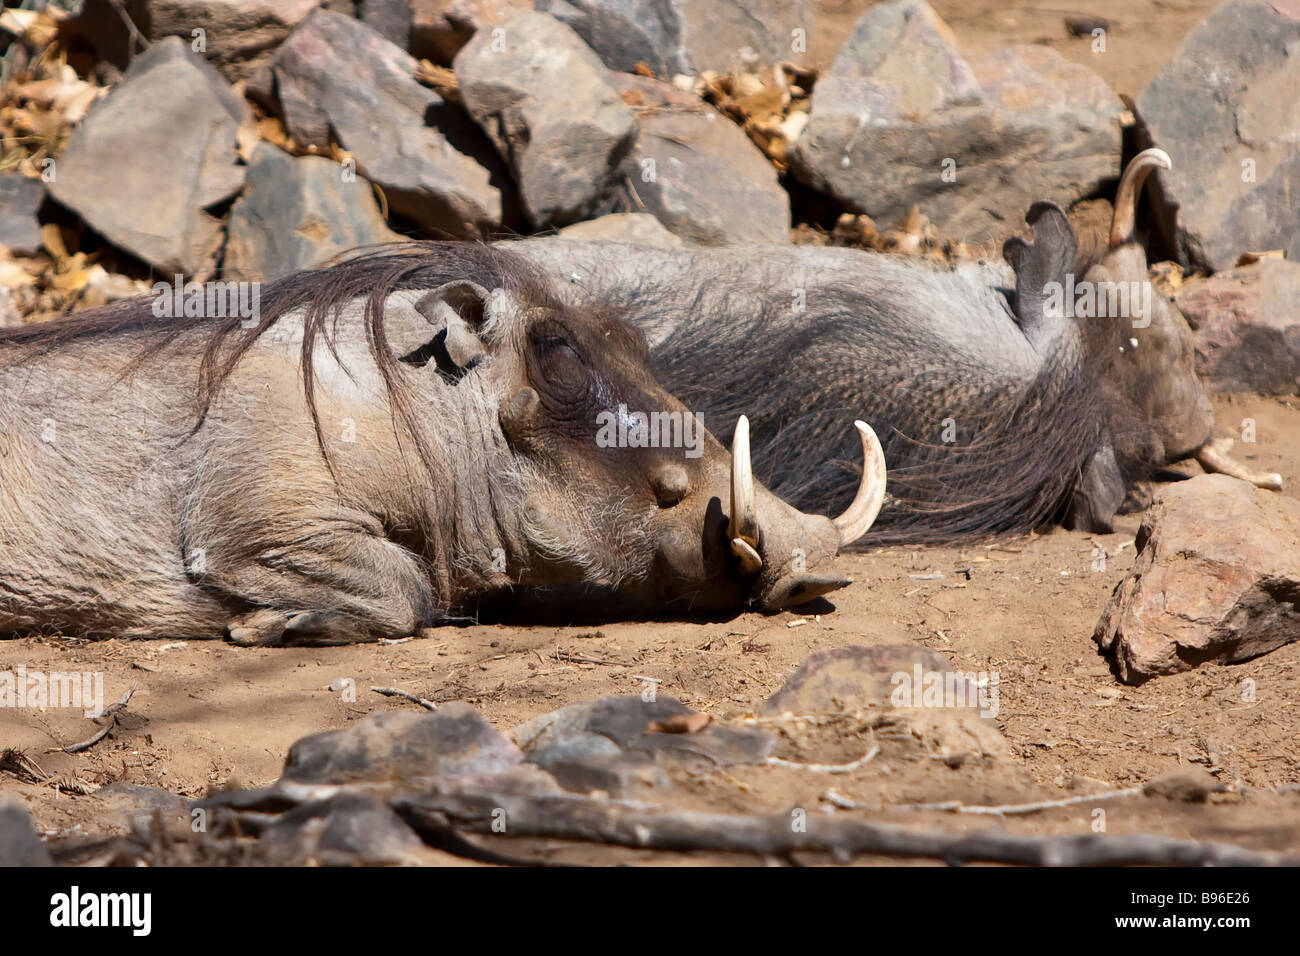 Wart hogs at the Denver Zoo - Stock Image